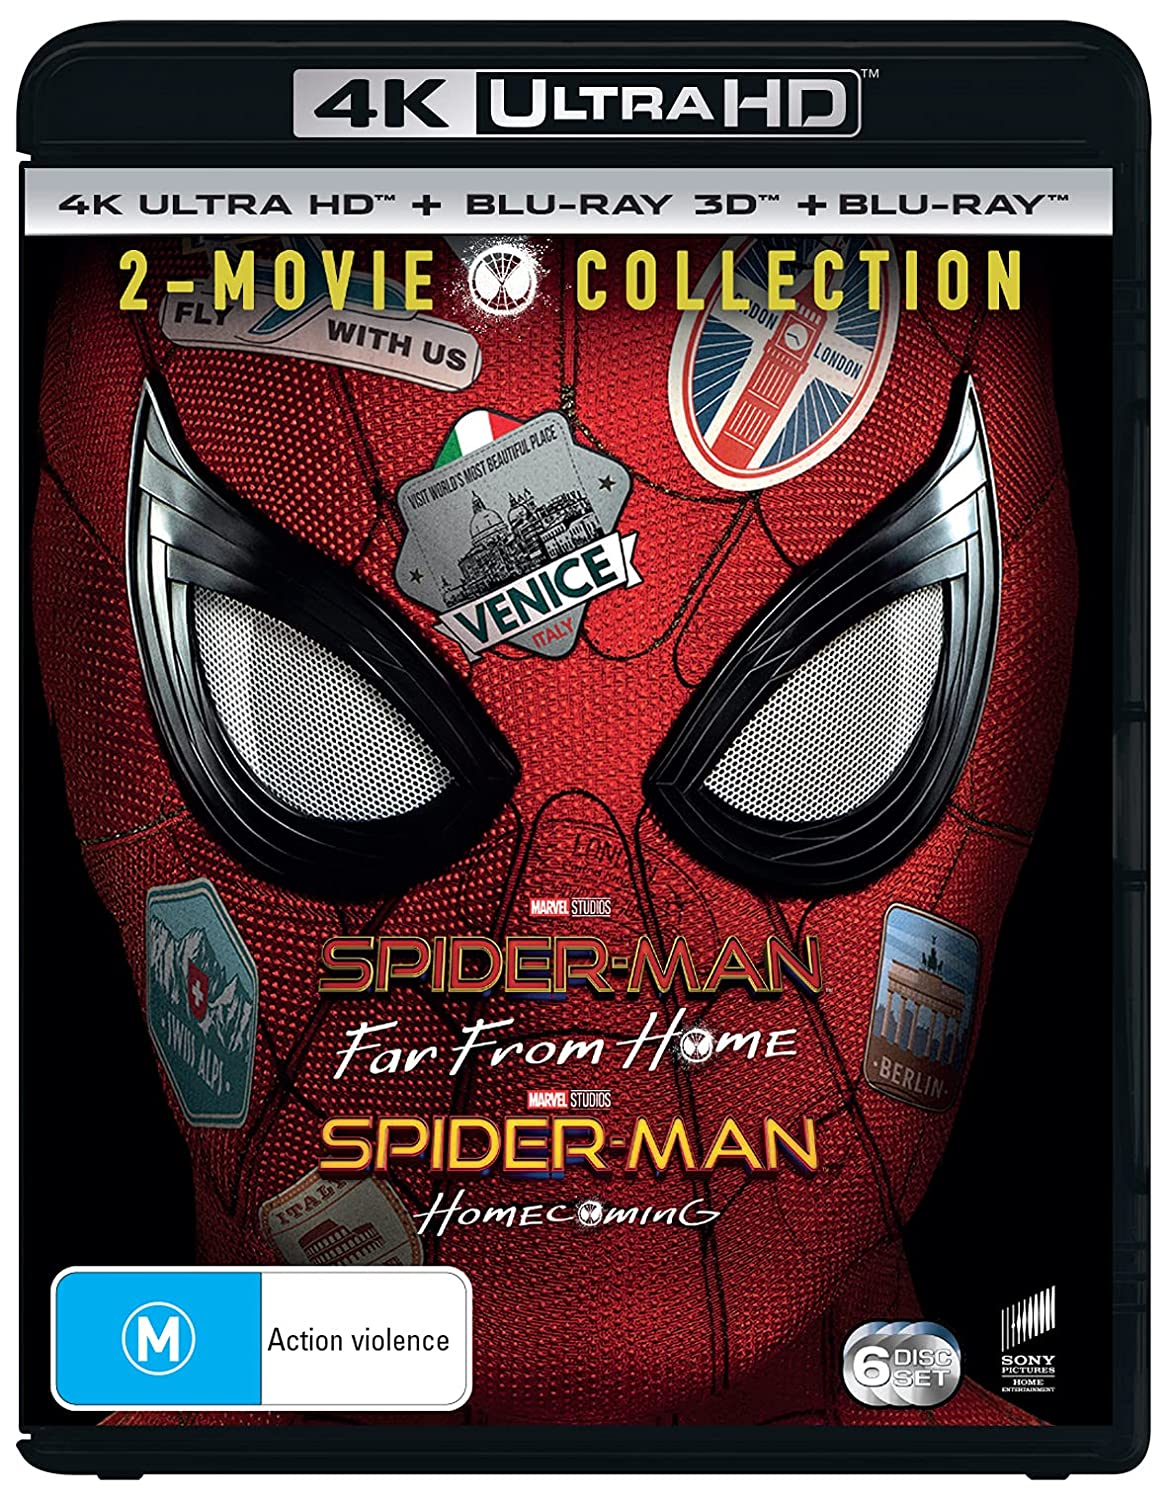 Spider-man: Far From Home / Spider-man: Homecoming [4K + Blu-ray 3D + Blu-ray]